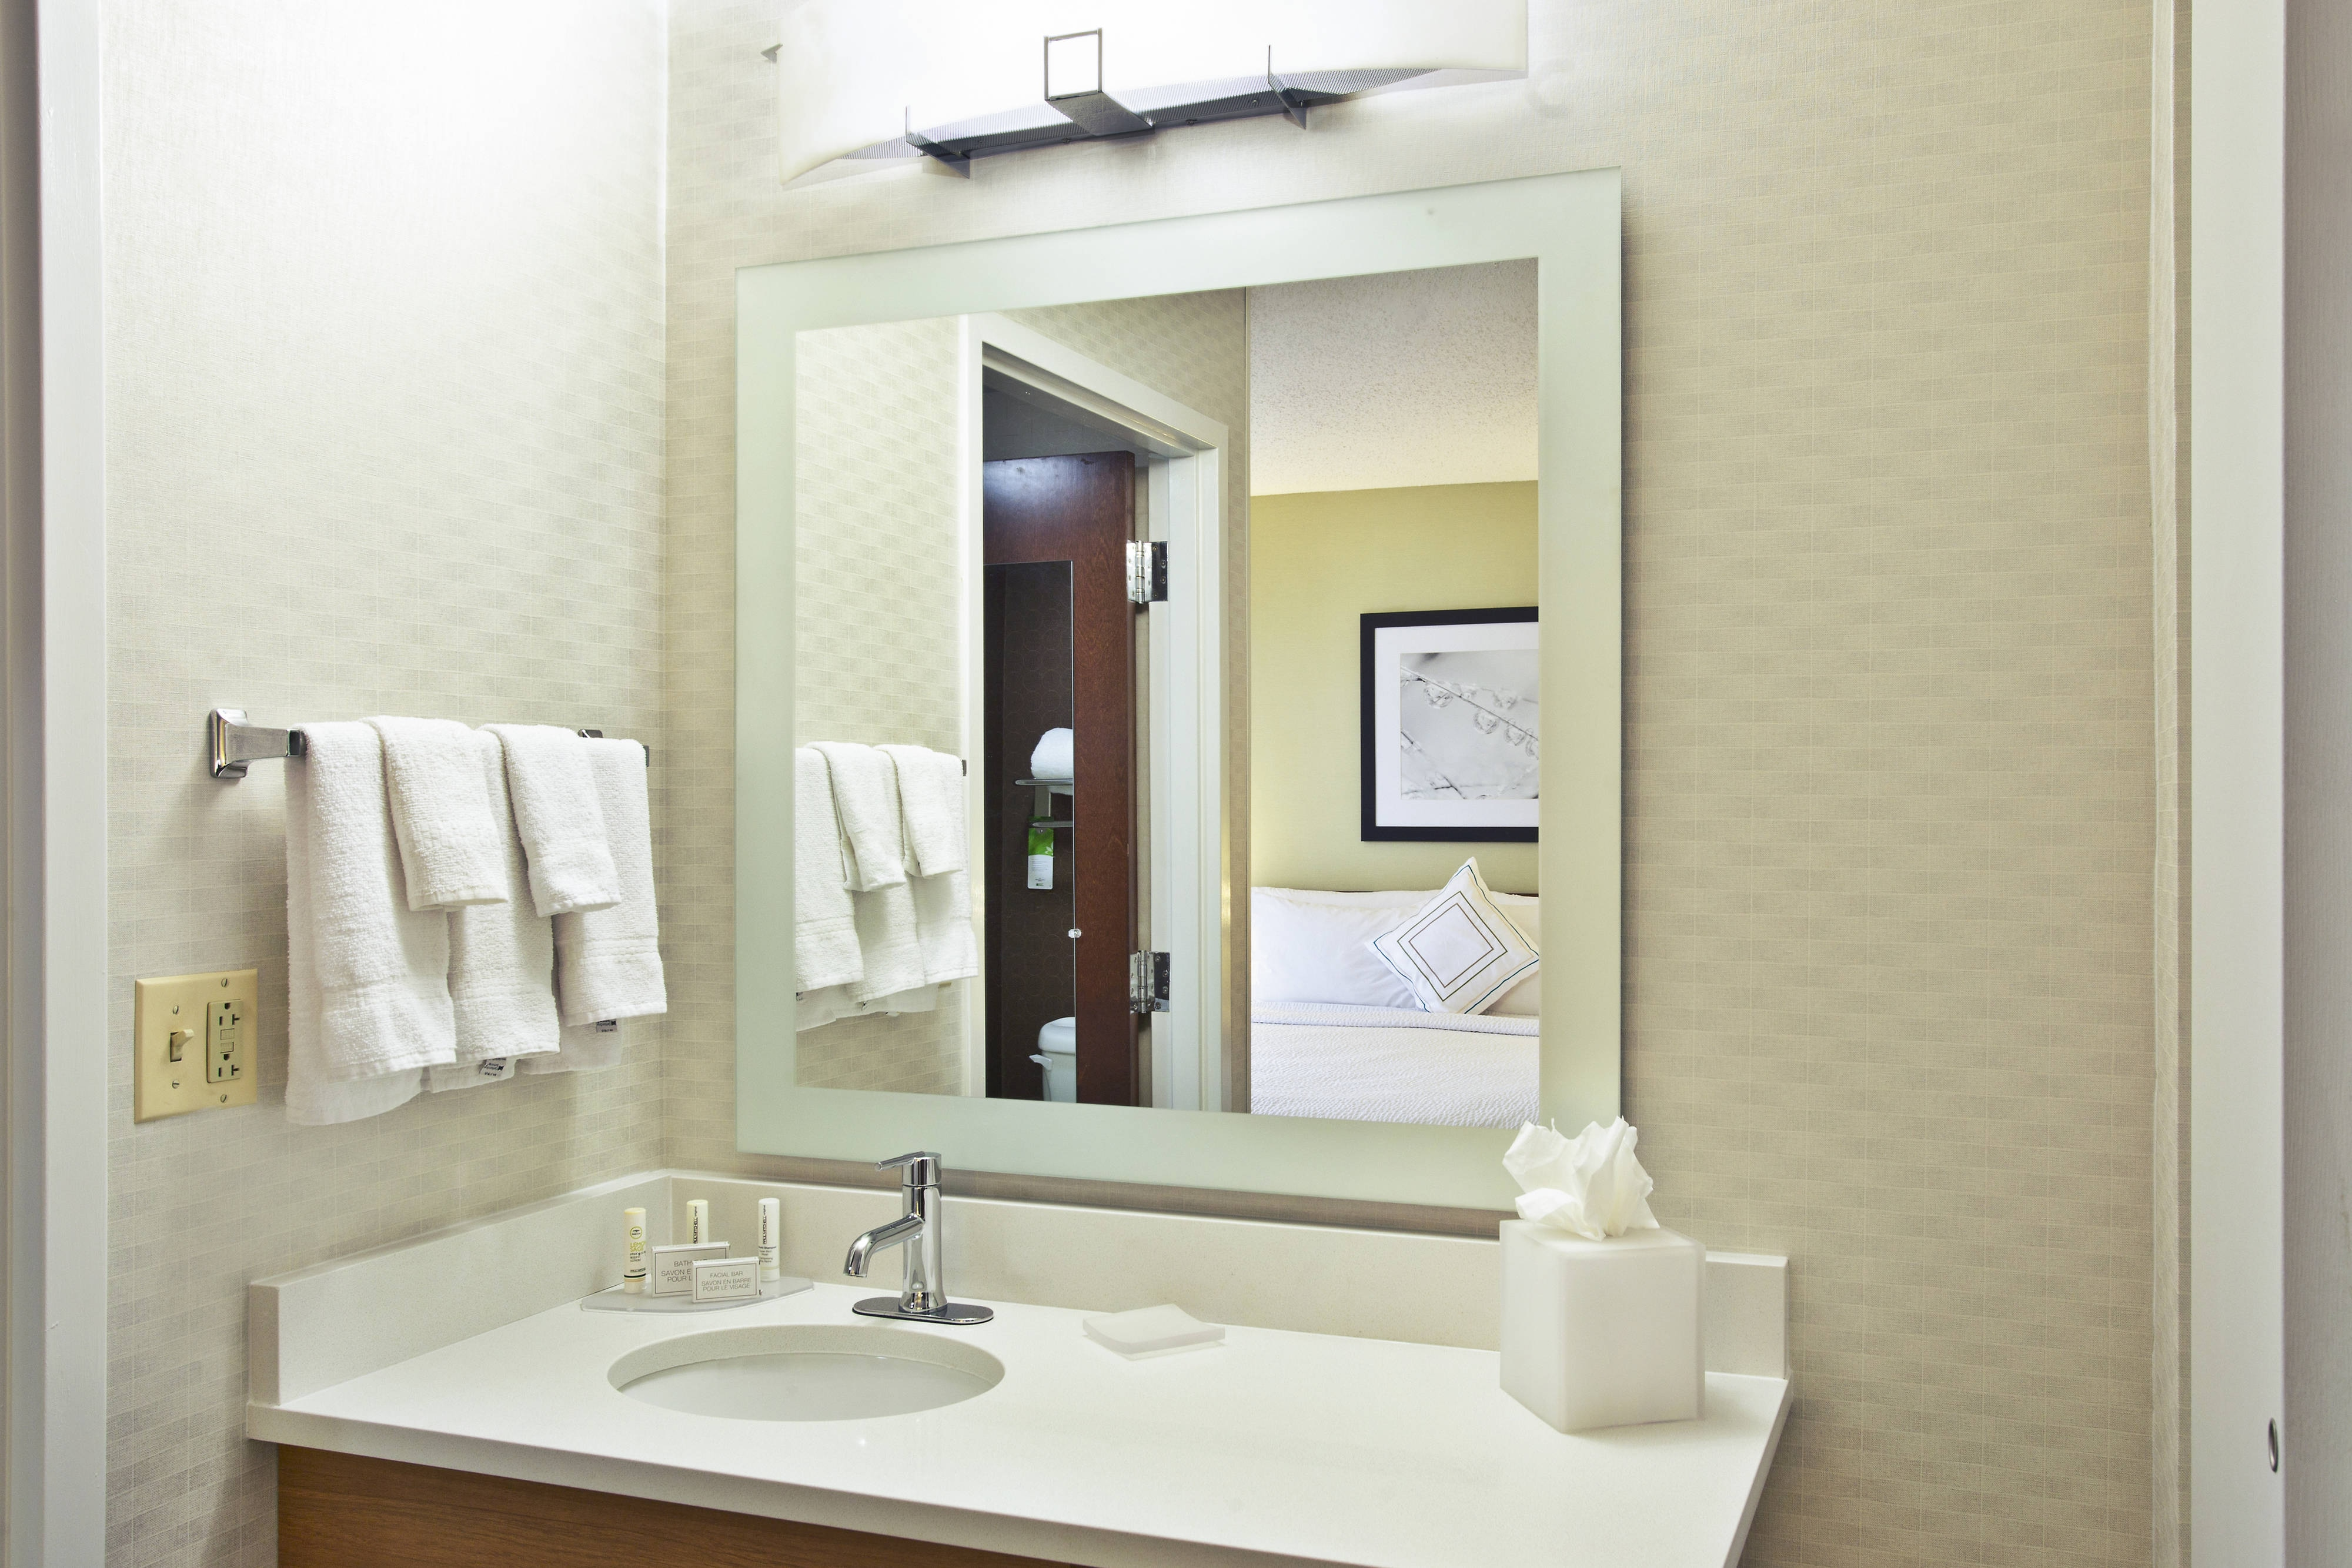 Studio Suites Bathroom Vanity SpringHill Suites Chicago Southwest at Burr Ridge/Hinsdale